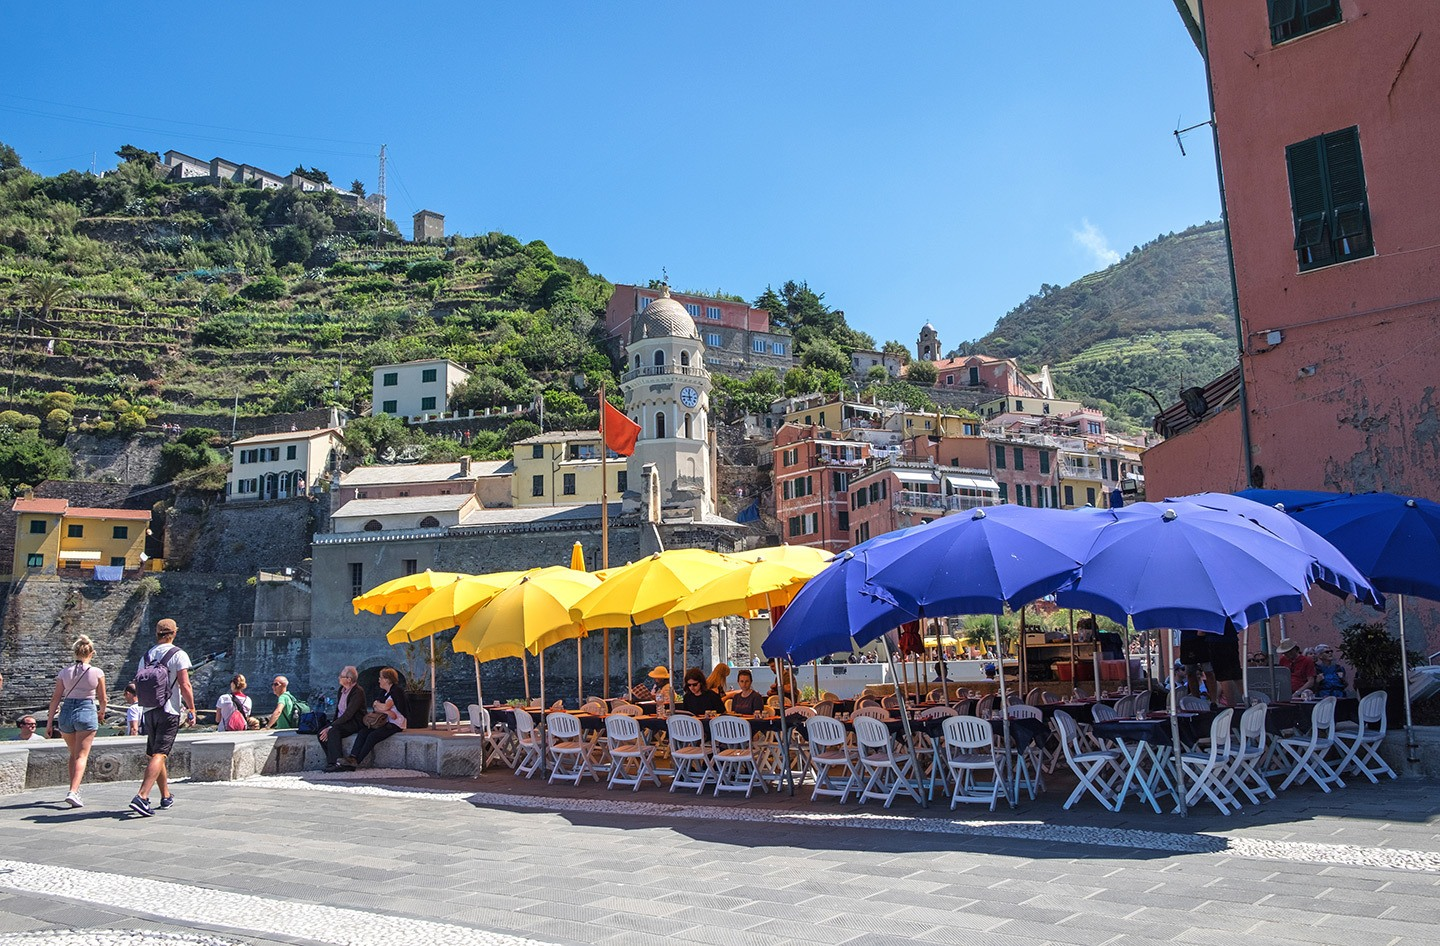 Sunny lunch at a Plaza in Vernazza, Cinque Terre